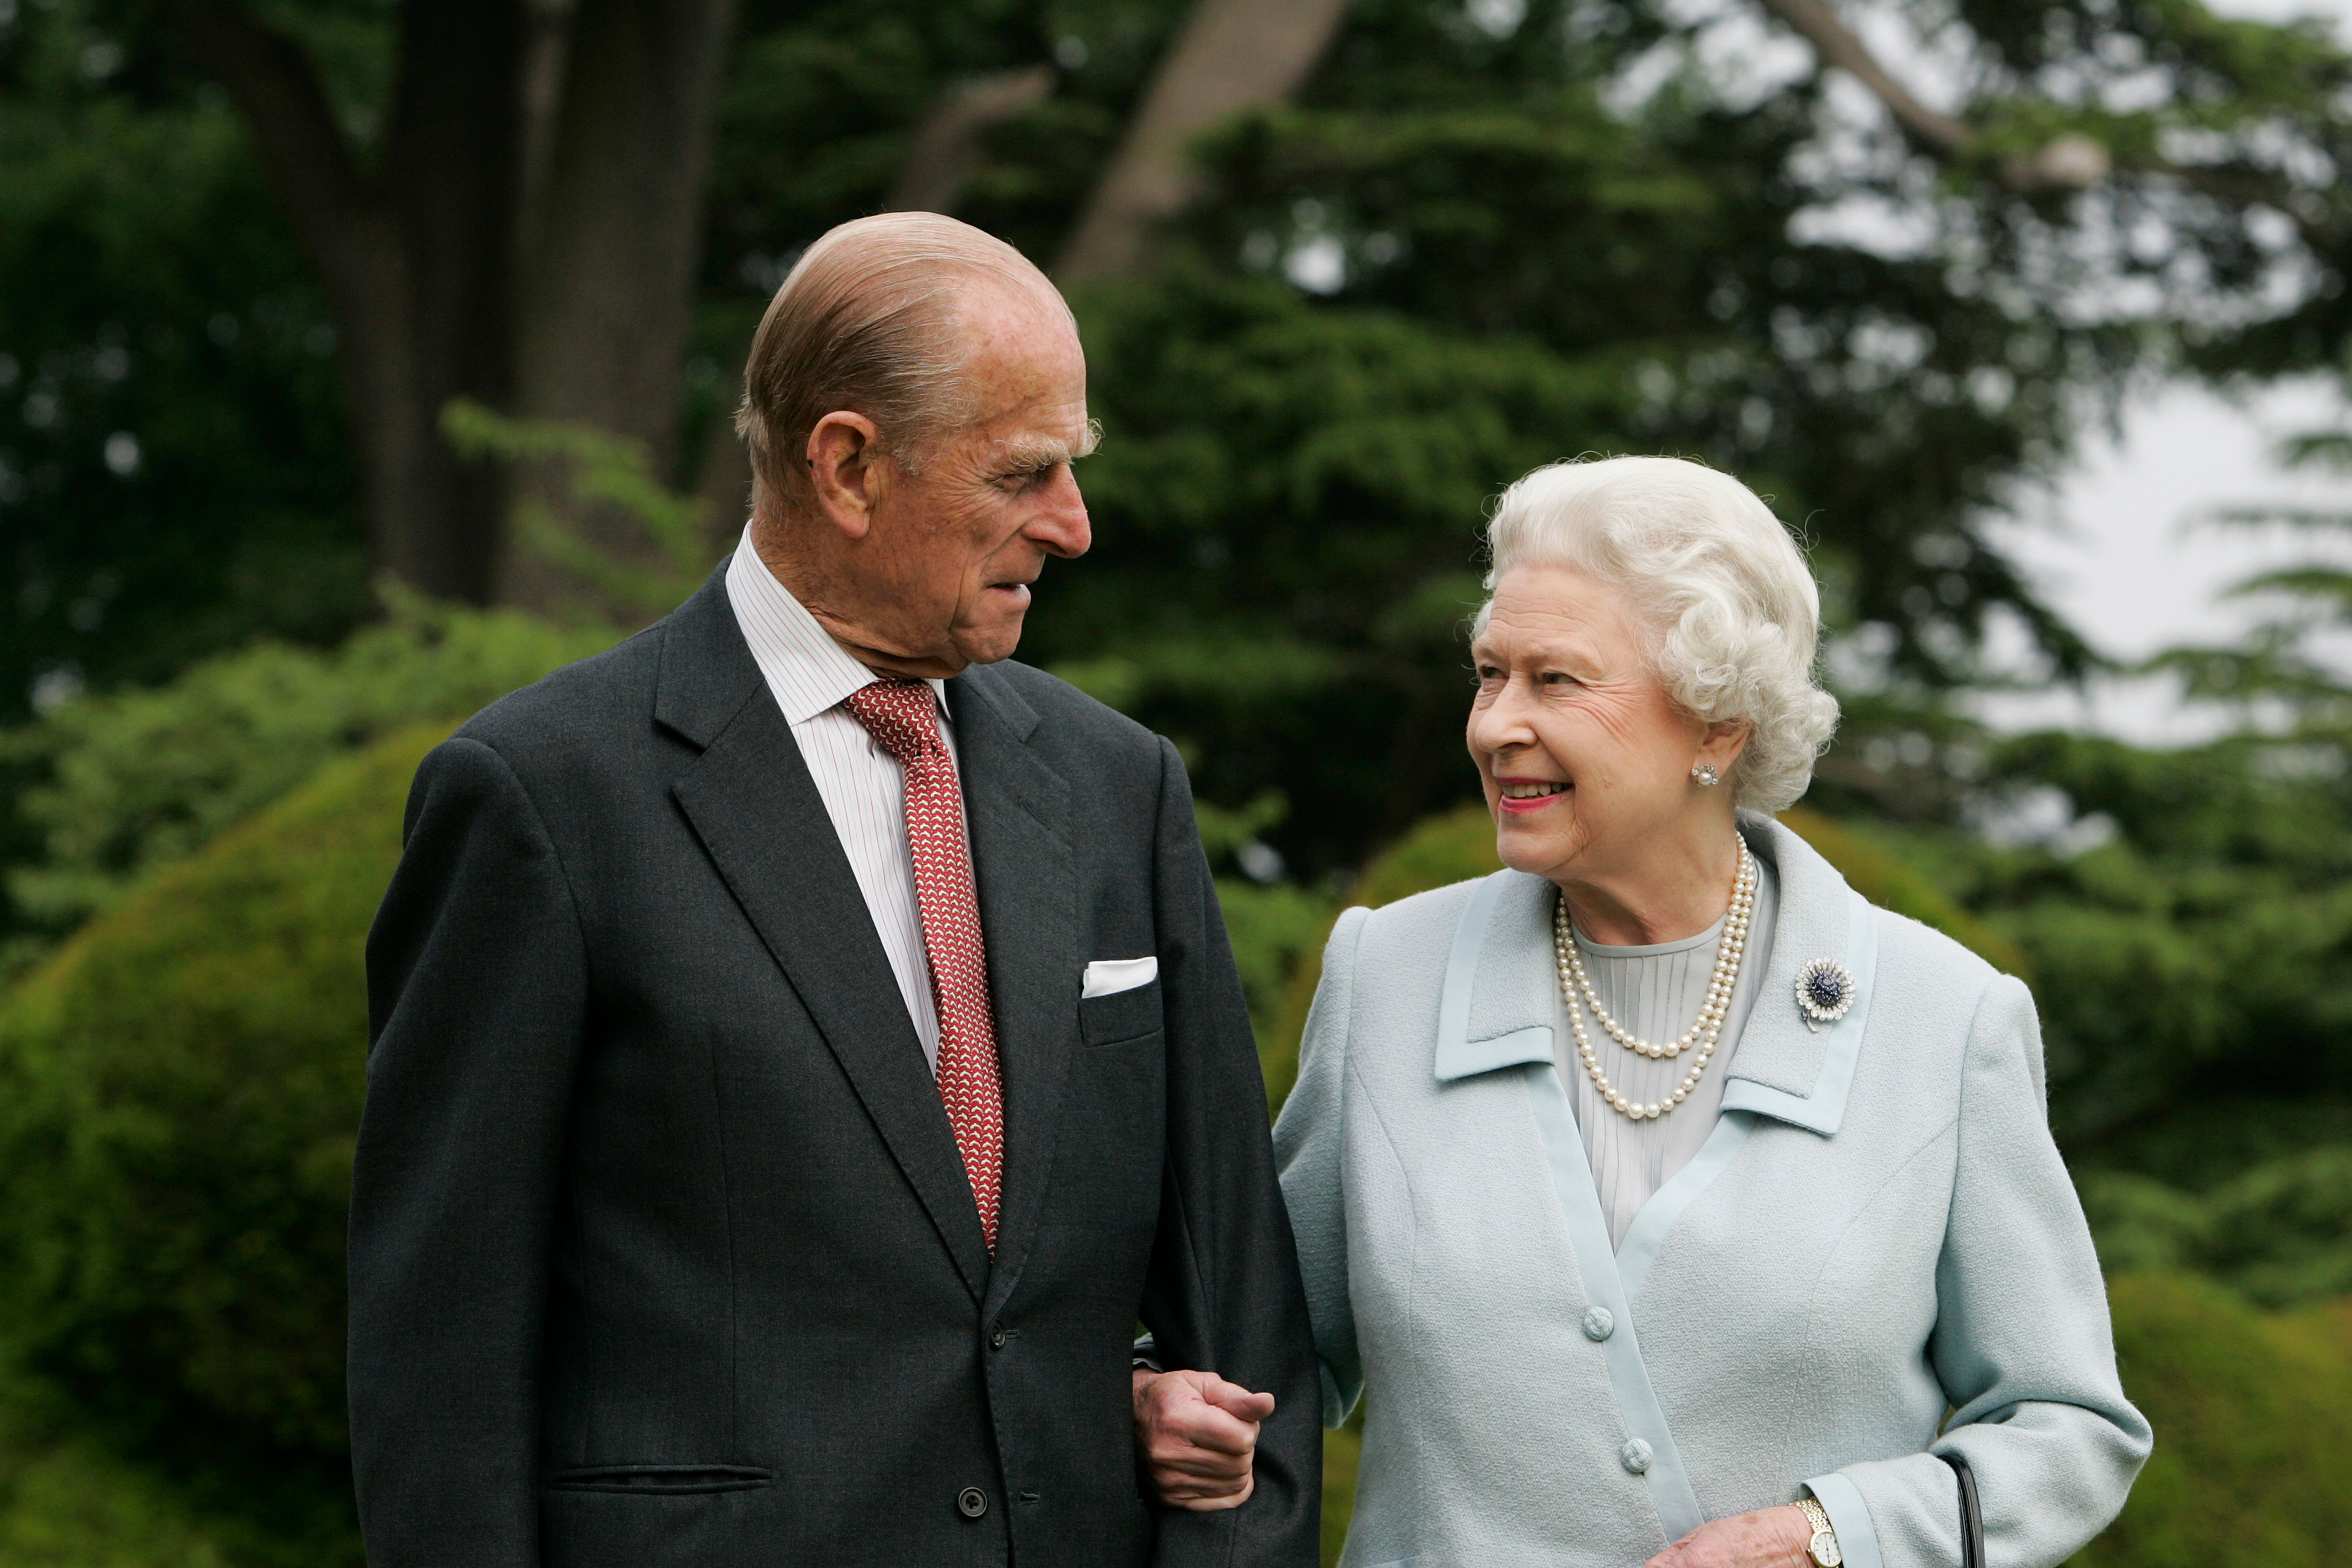 Queen Elizabeth II and Prince Philip marking their Diamond Wedding Anniversary in November 2007. | Photo: Getty Images